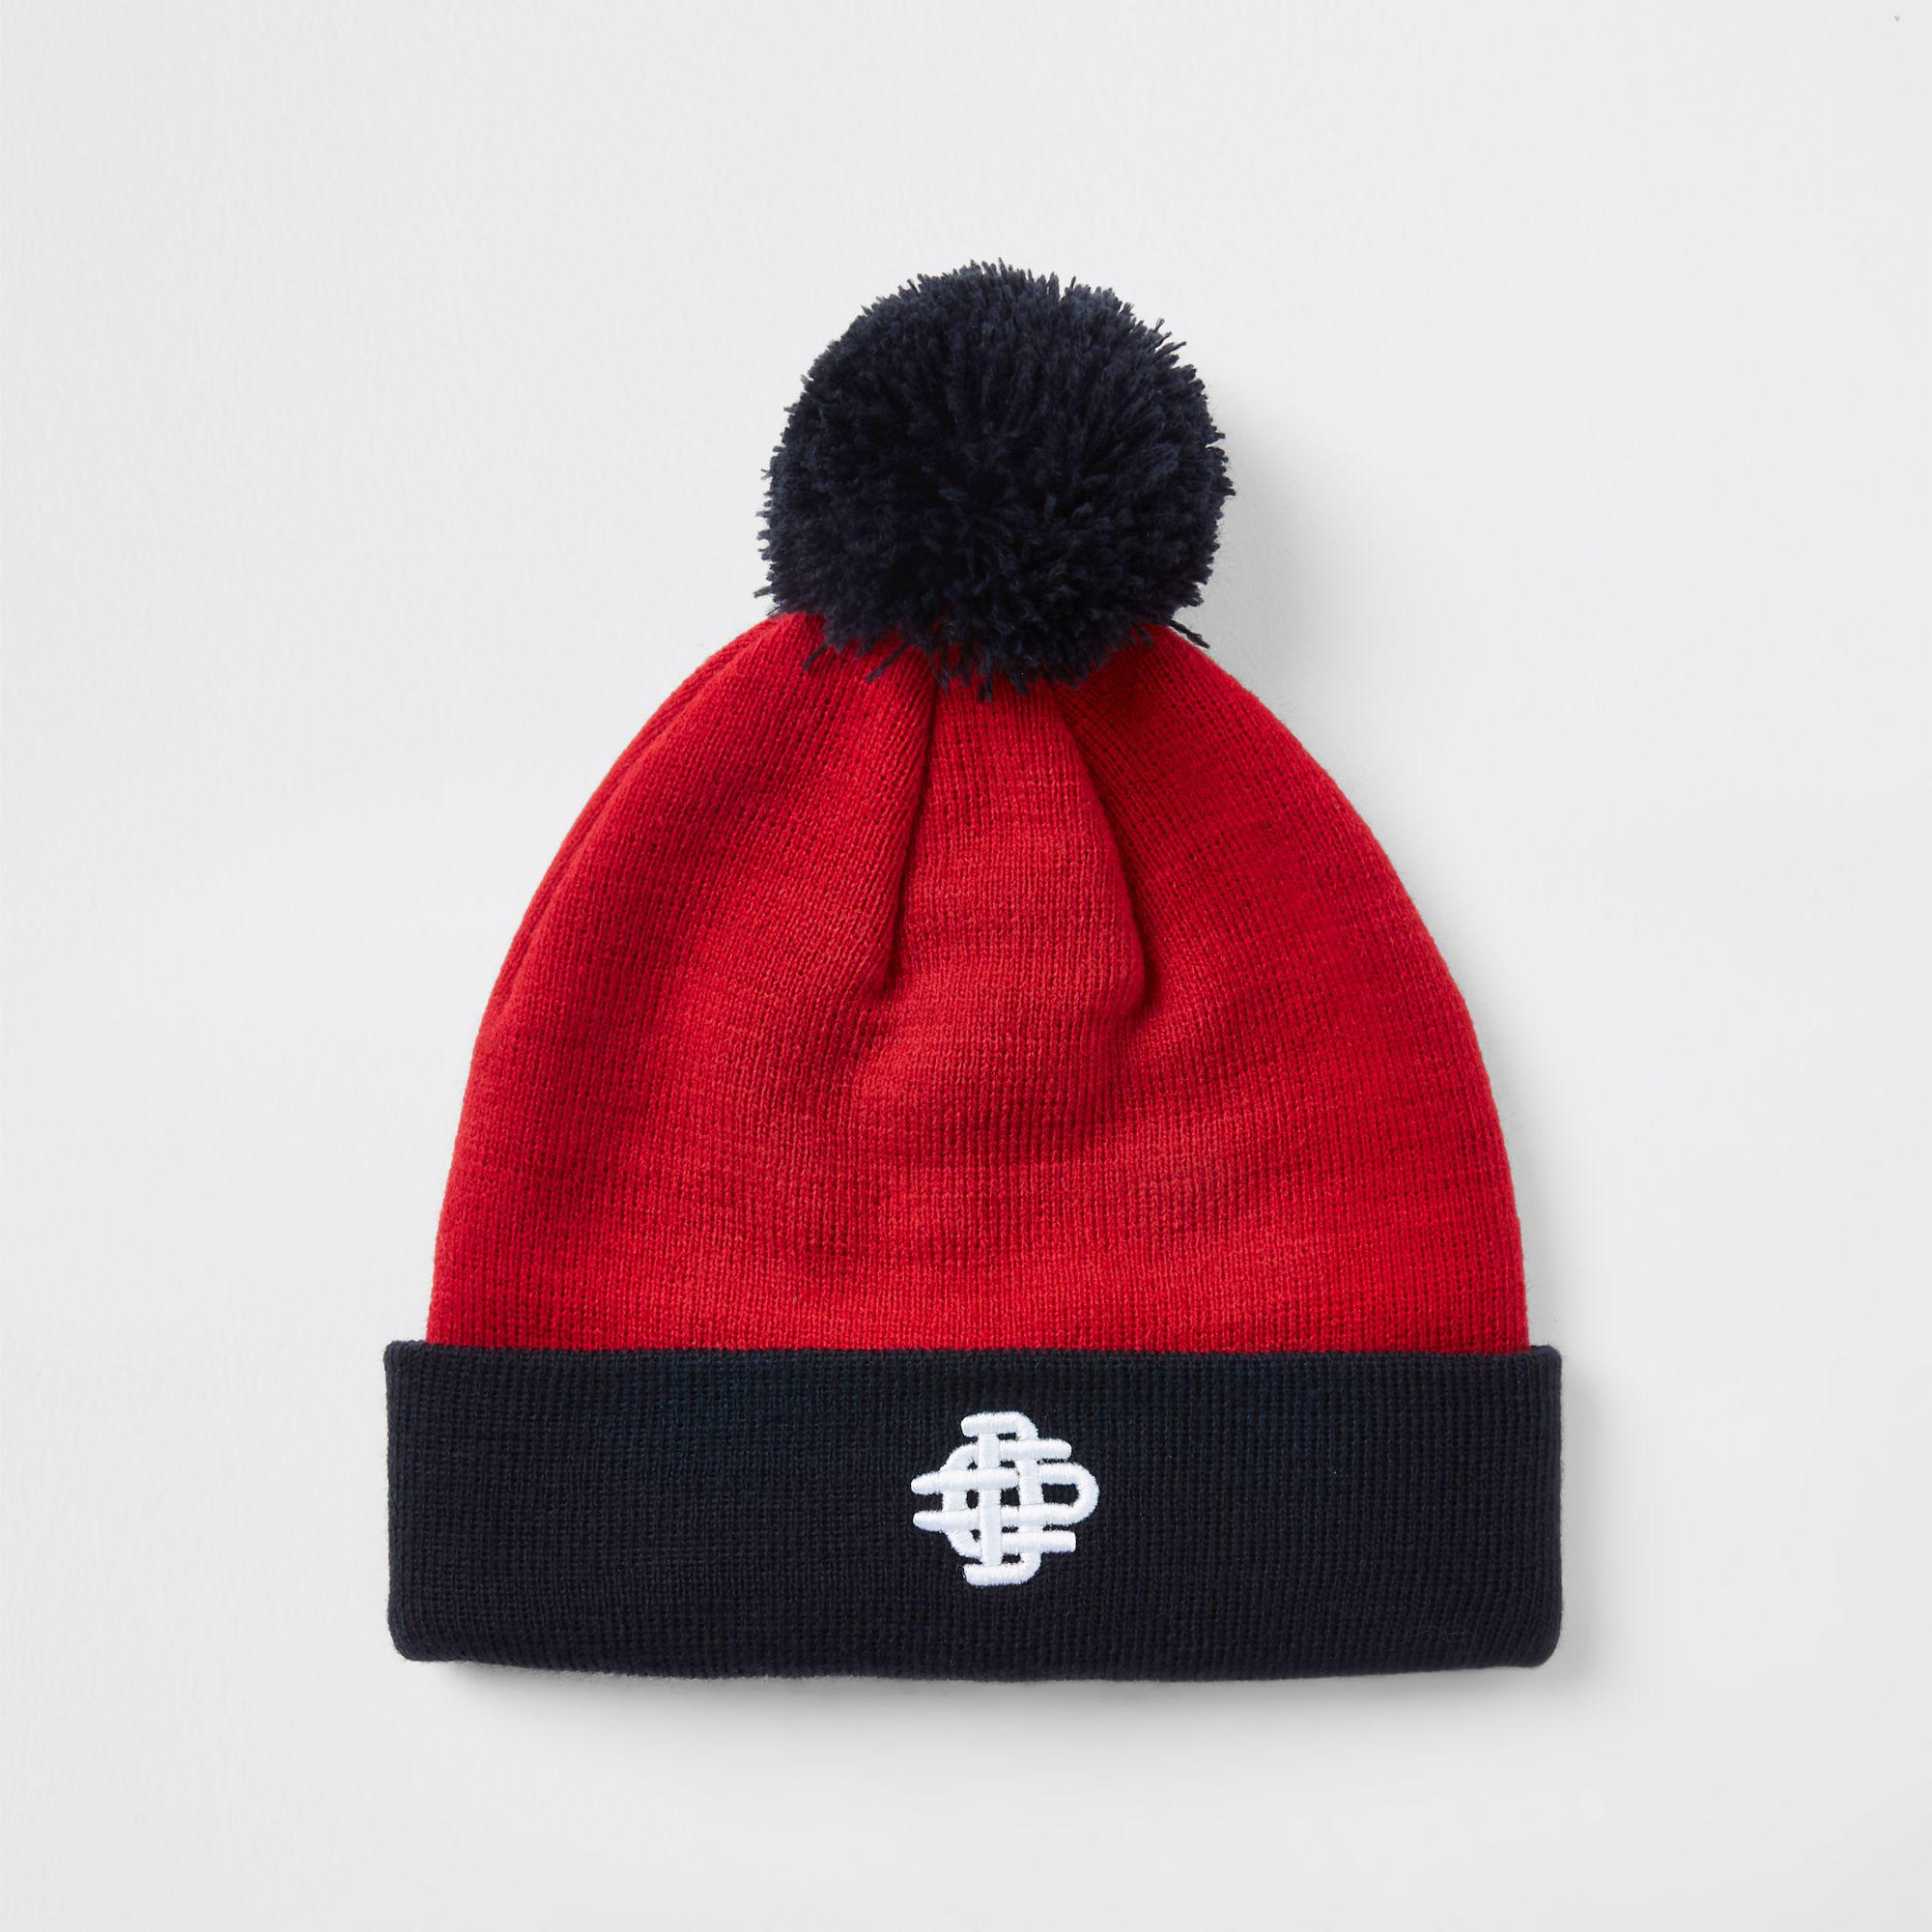 9d034fbba8e River Island Contrast Bobble Beanie Hat in Red for Men - Lyst